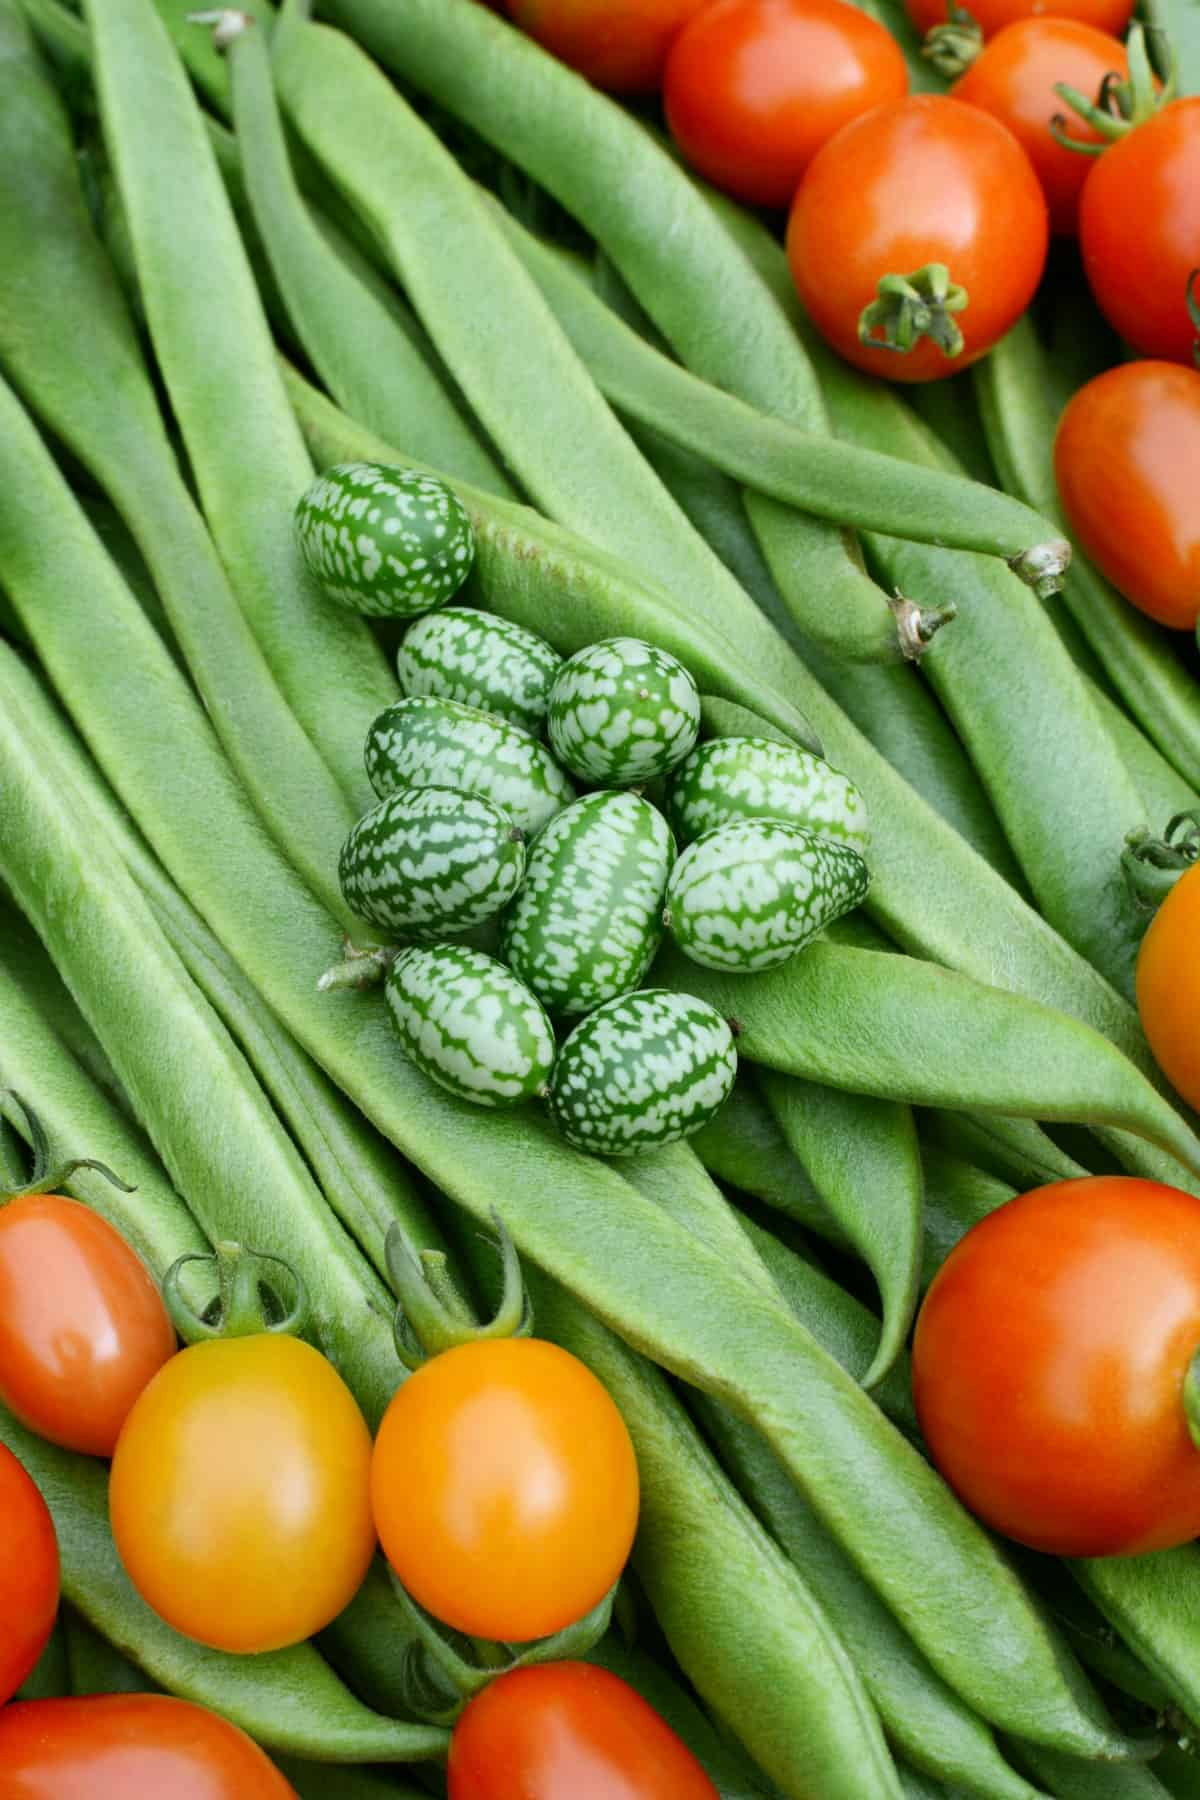 Green cucamelons and red tomatoes on a bed of long runner beans